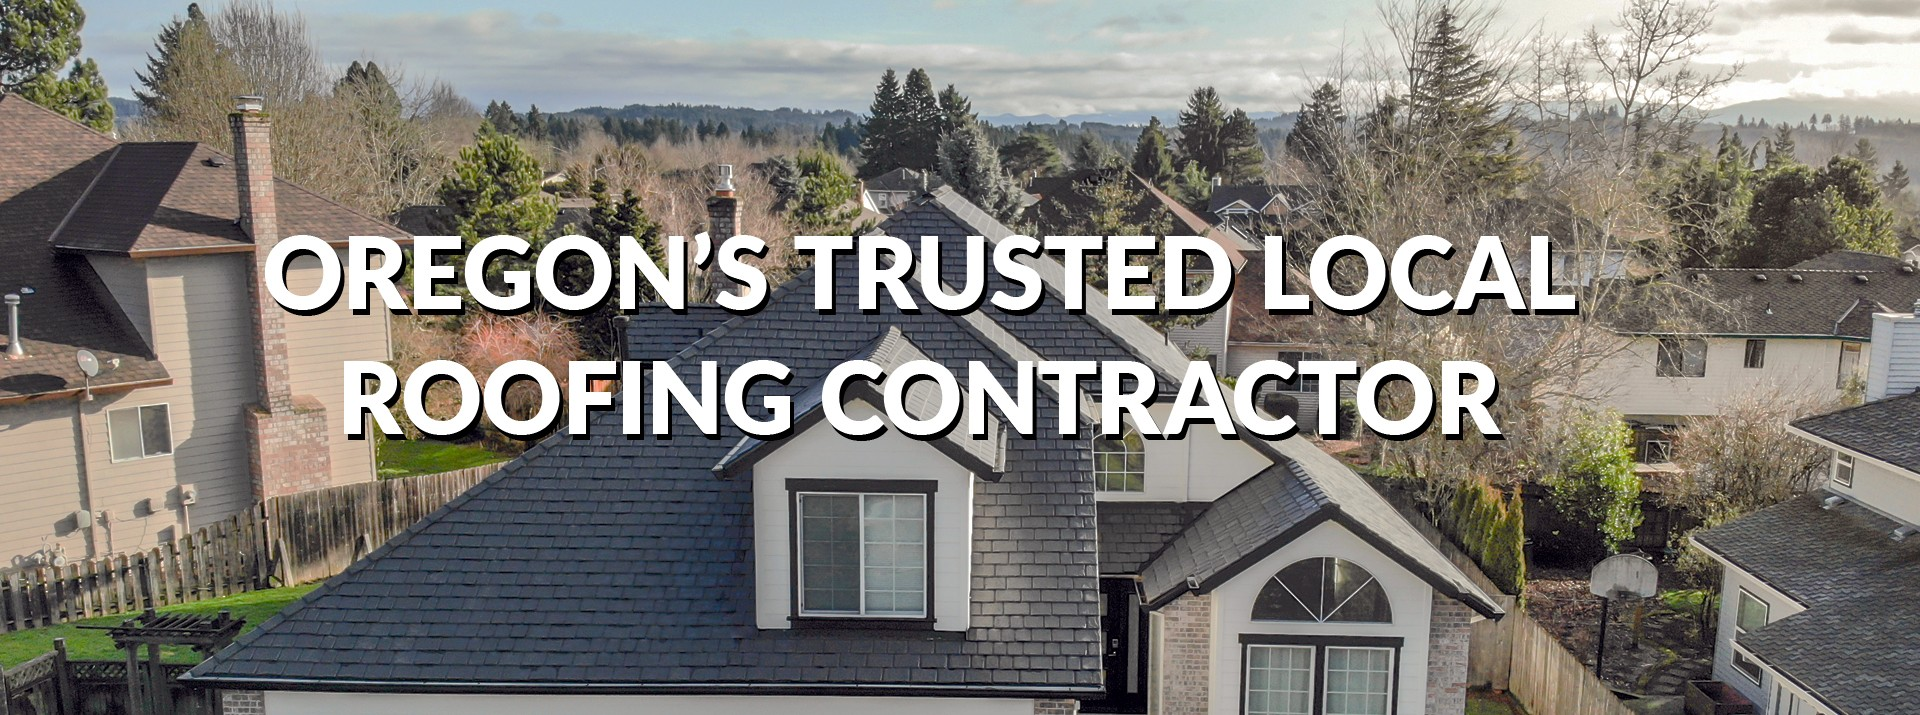 Premier Pacific Roofing A Local Roofing Company You Can Trust